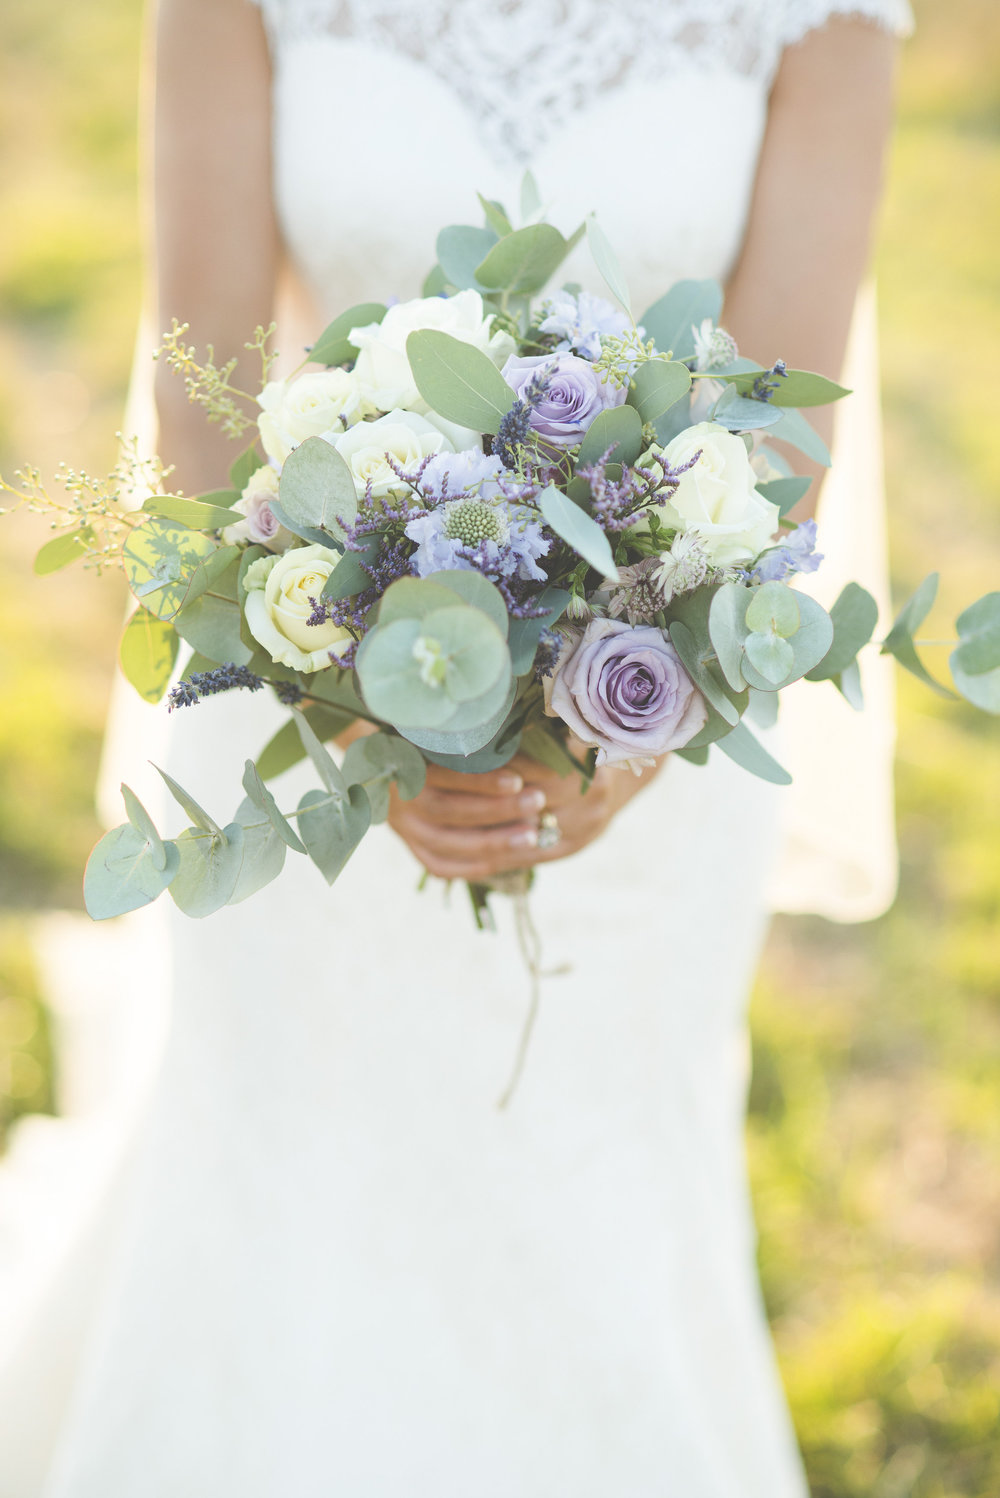 flowers by Jennifer Pinder wedding florist Kent London bouquet in purple and white .jpg